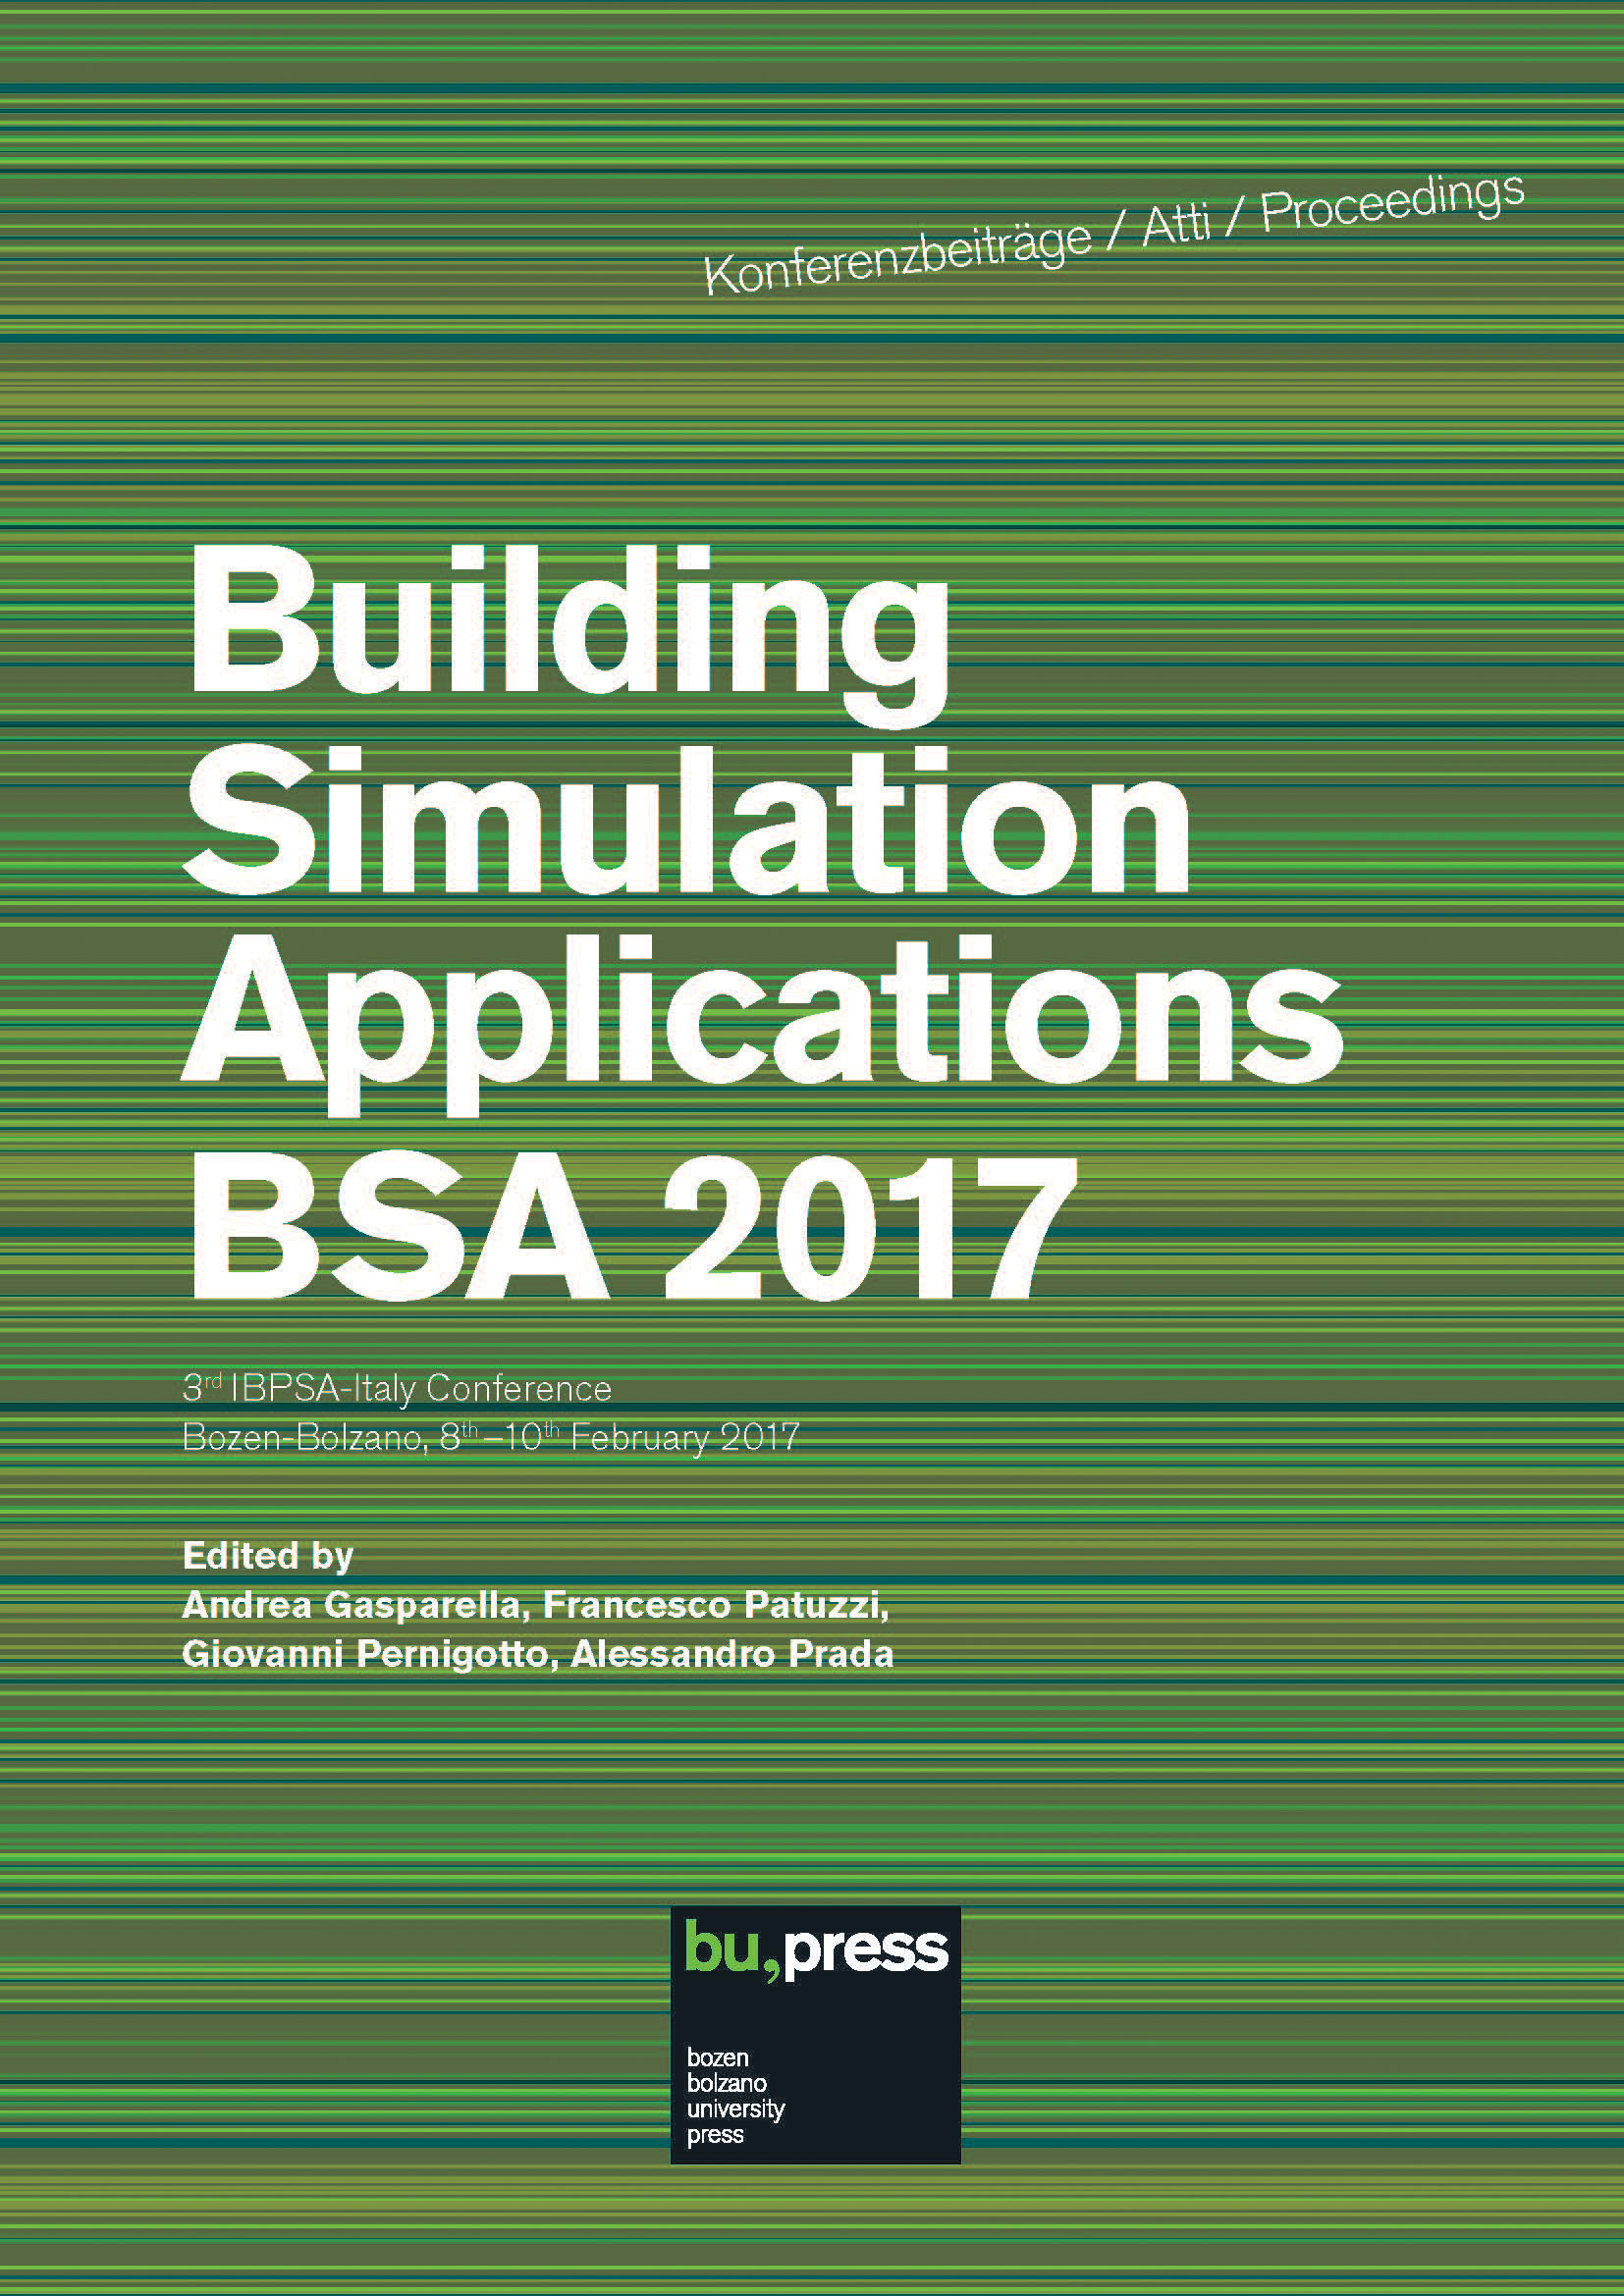 Cover of Building Simulation Applications BSA 2017